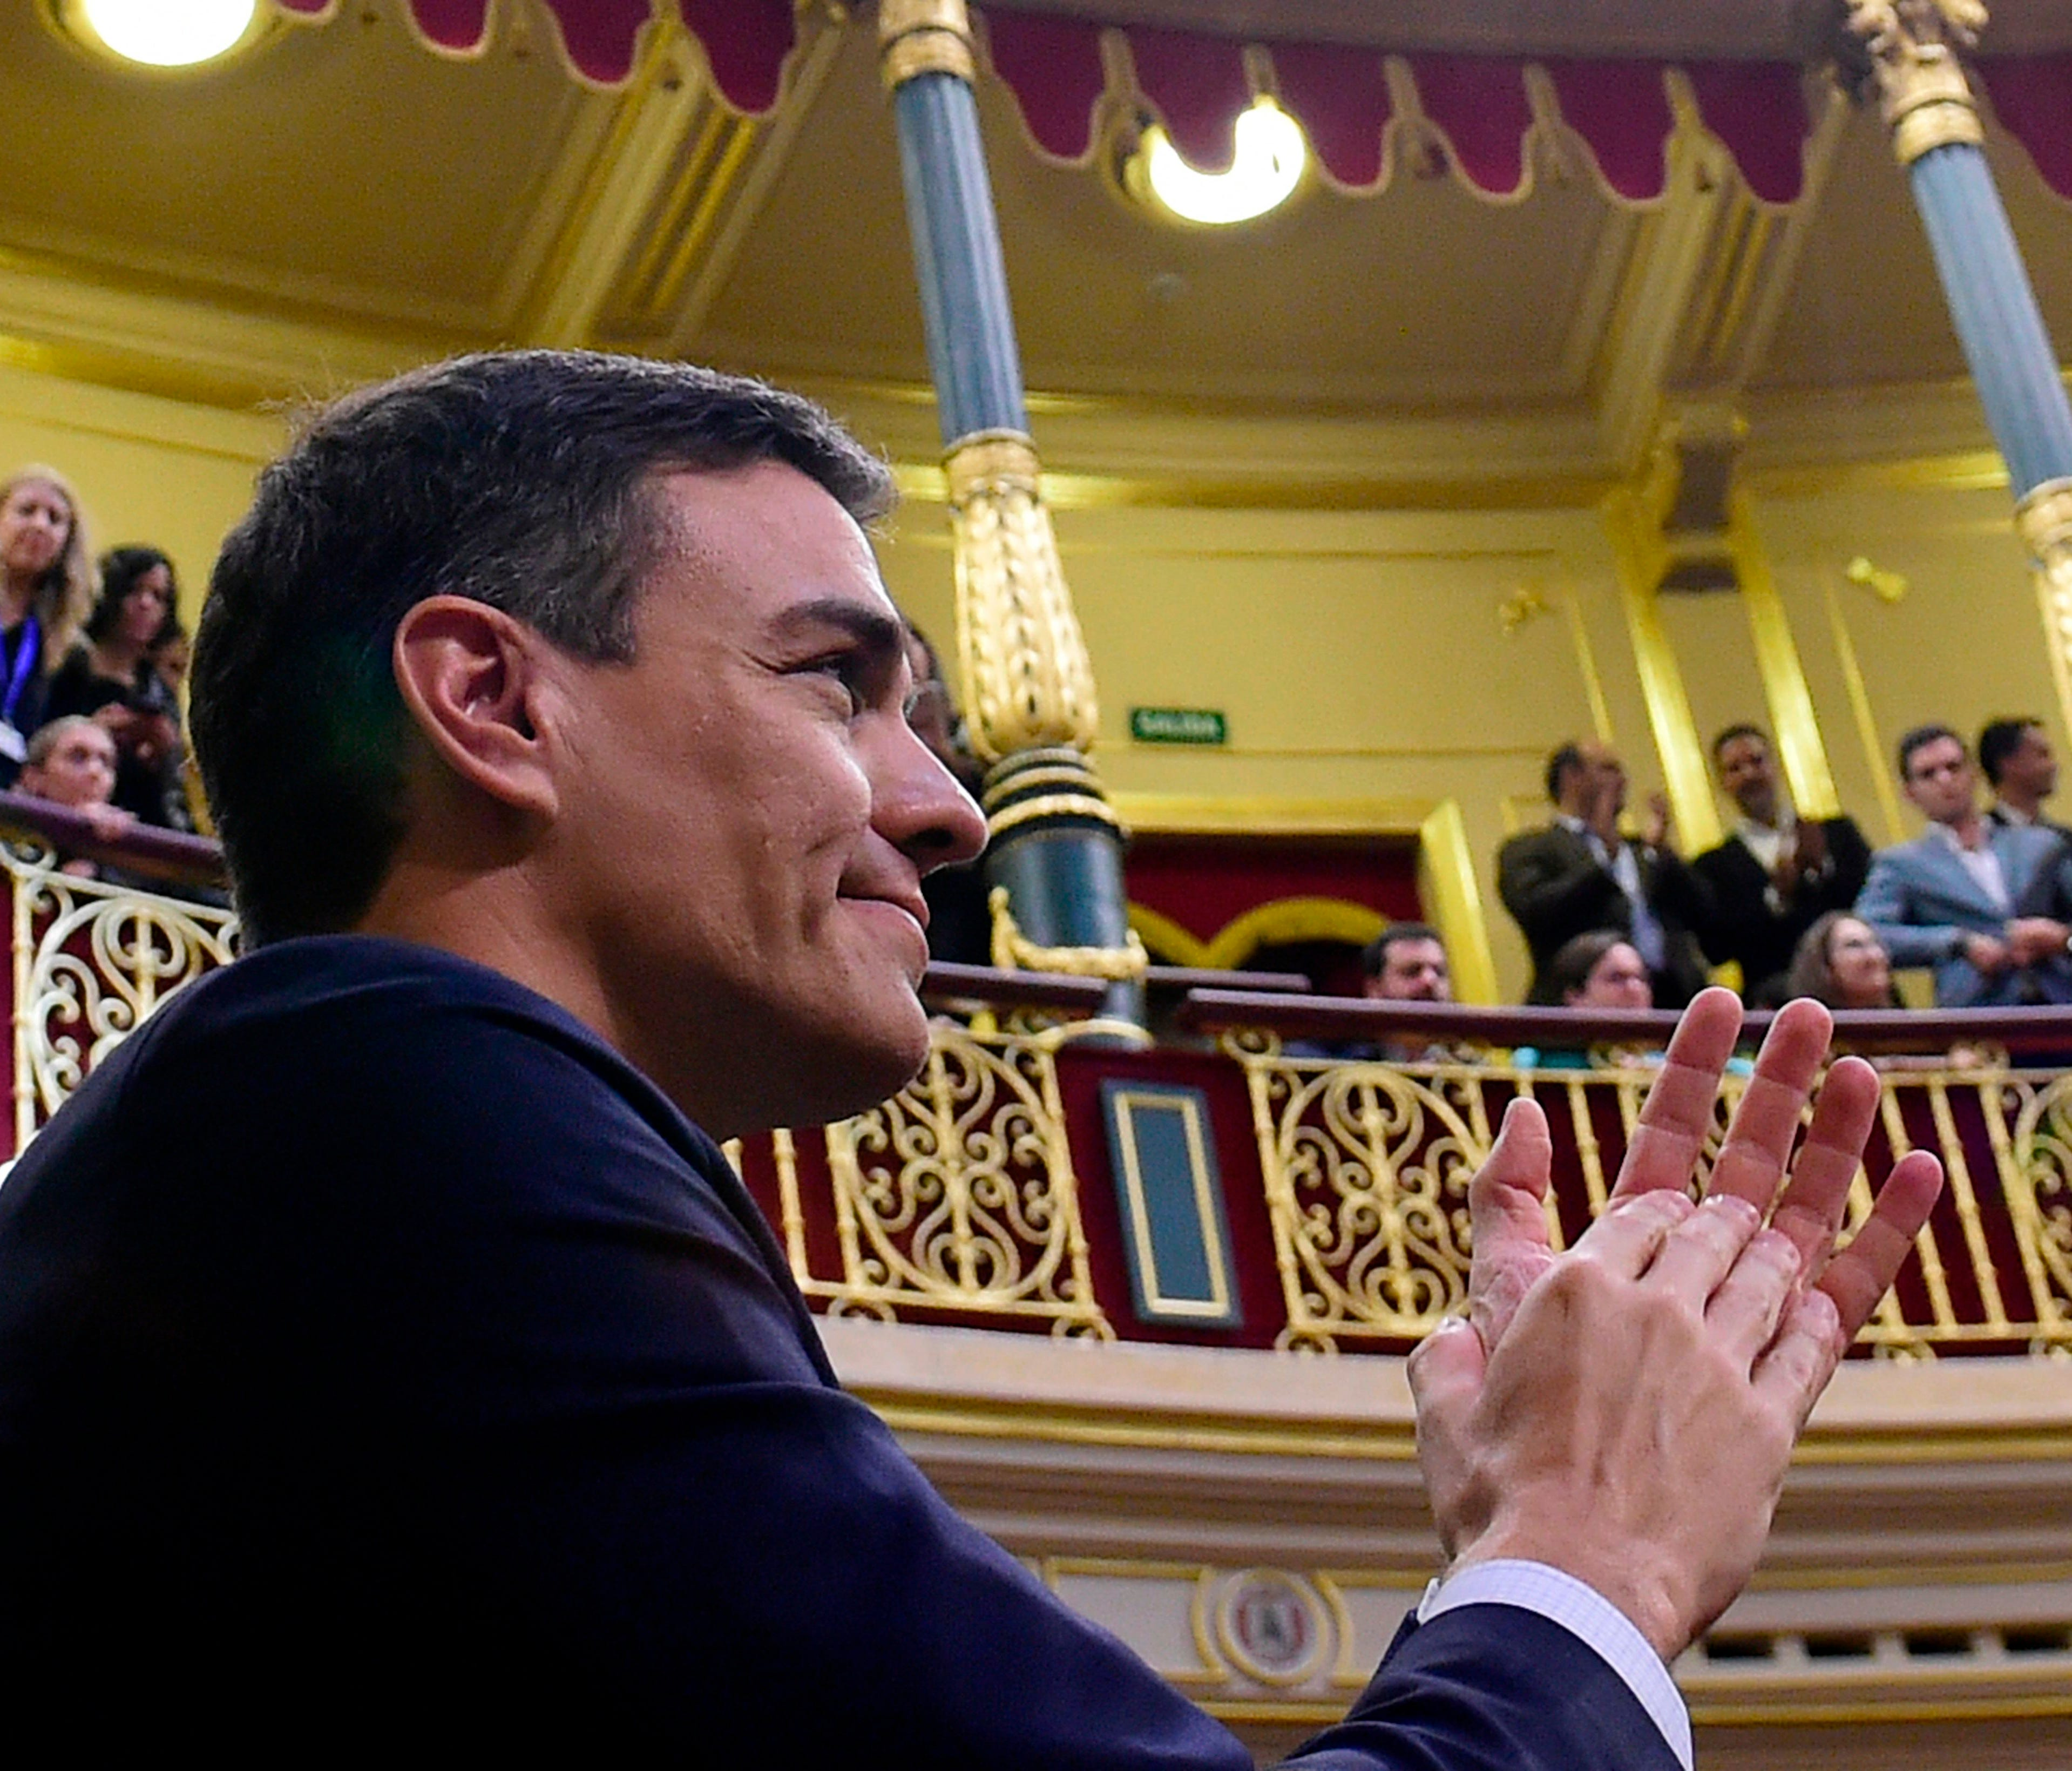 Spain's new Prime Minister Pedro Sanchez acknowledges applause after a vote on a no-confidence motion at the Lower House of the Spanish Parliament in Madrid on June 1, 2018.